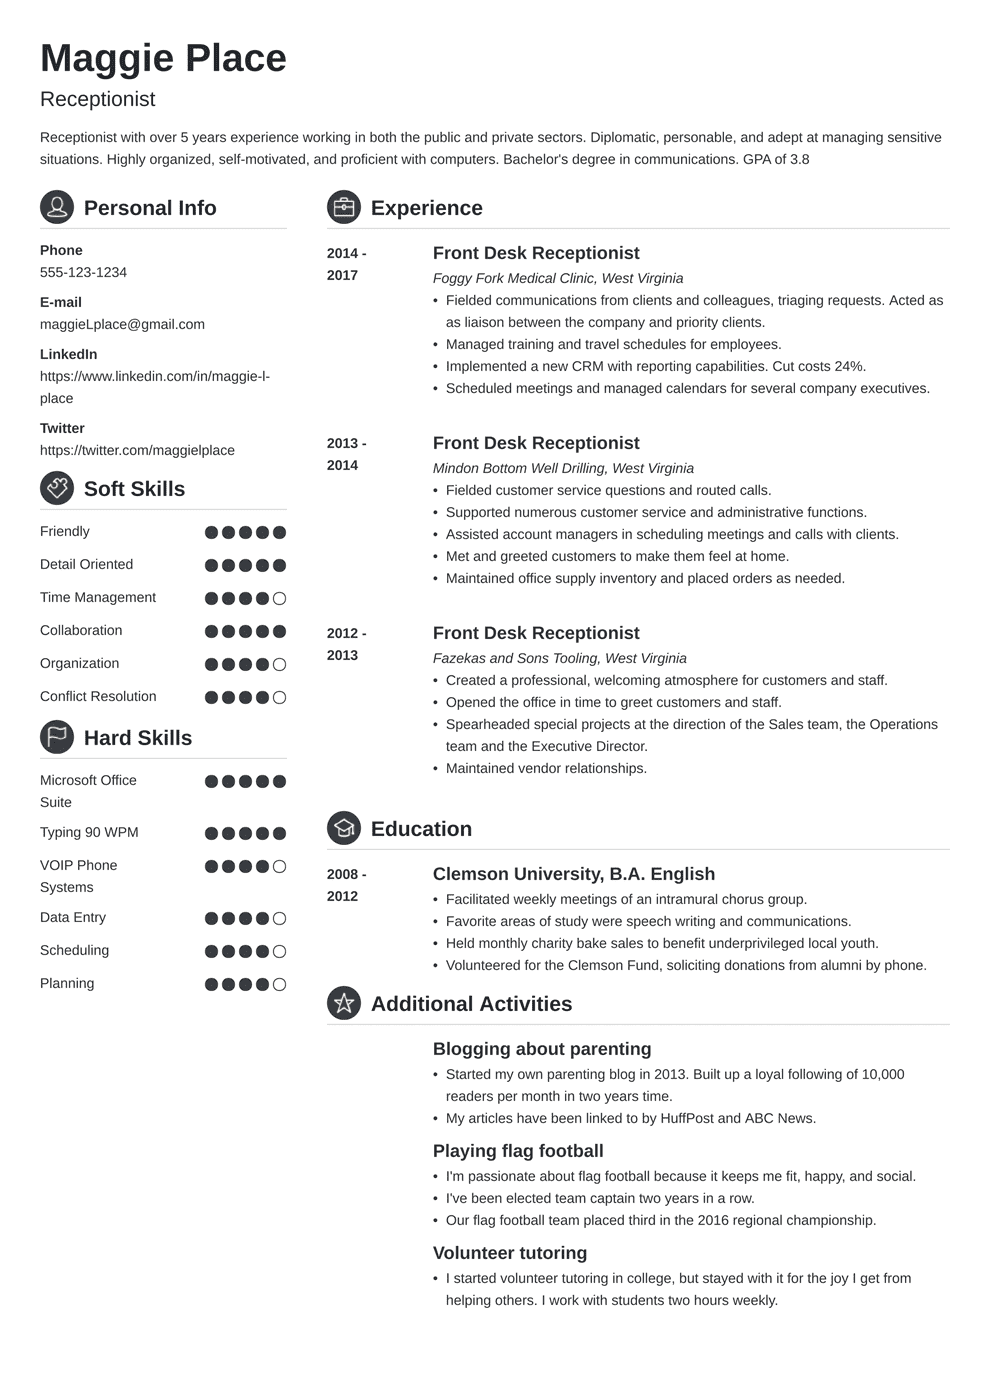 Receptionist Resume: Sample and Writing Guide (20+ Examples)